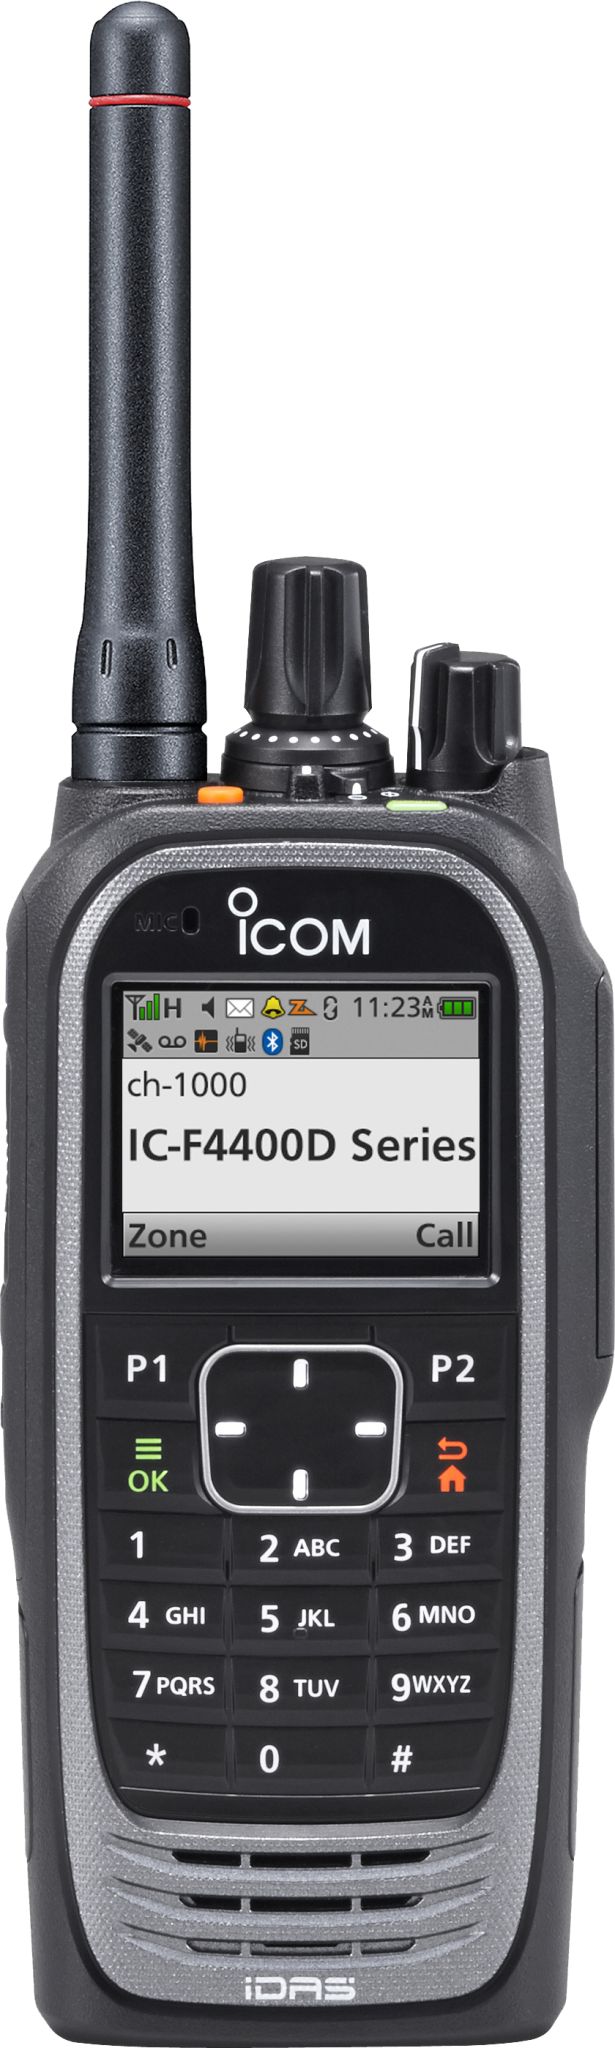 Icom IC-F3400DT featured image